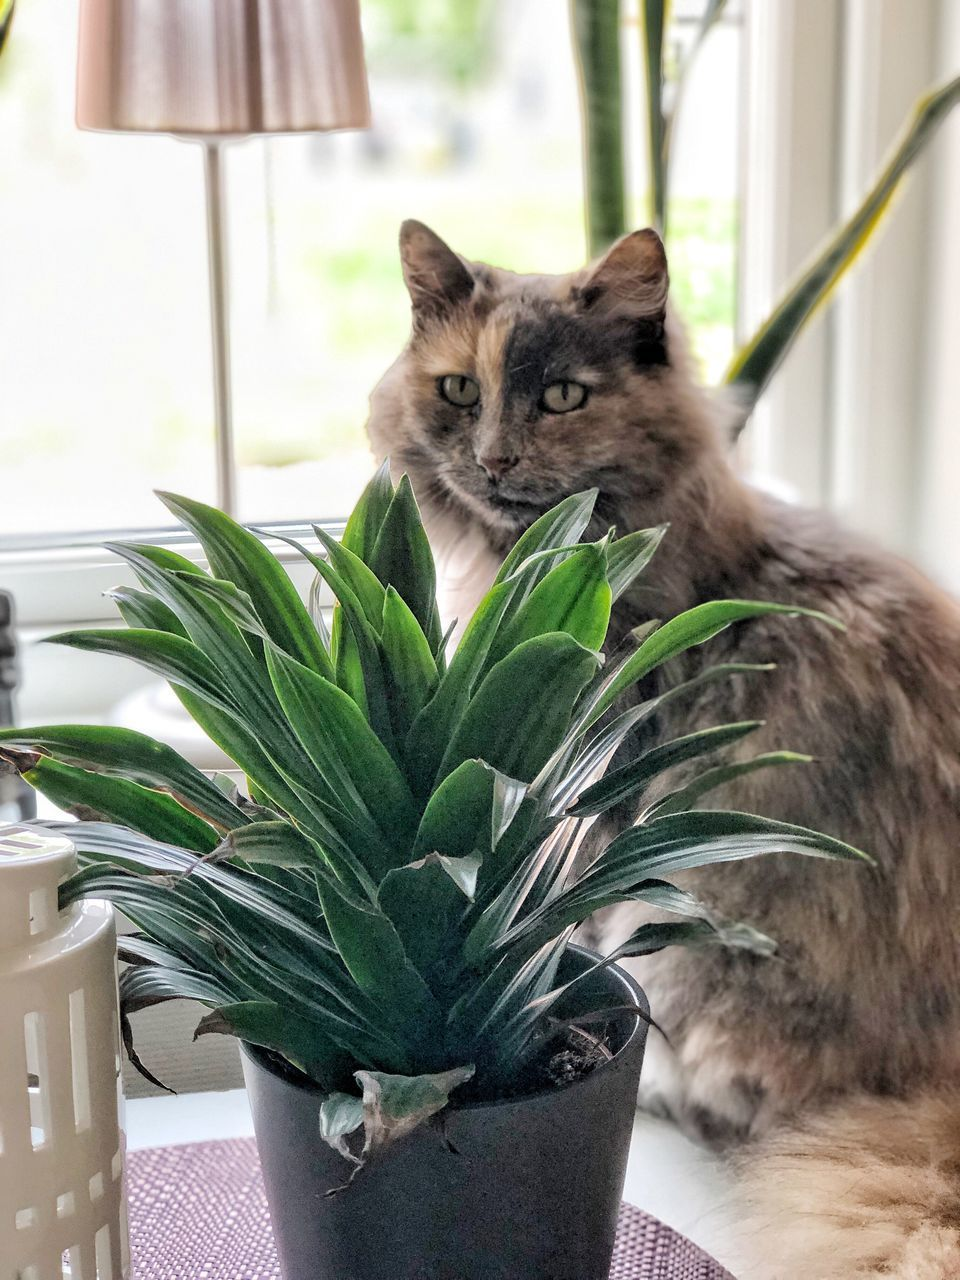 mammal, animal, one animal, animal themes, domestic, feline, pets, domestic animals, cat, vertebrate, plant, domestic cat, indoors, no people, potted plant, leaf, plant part, sitting, nature, green color, whisker, animal head